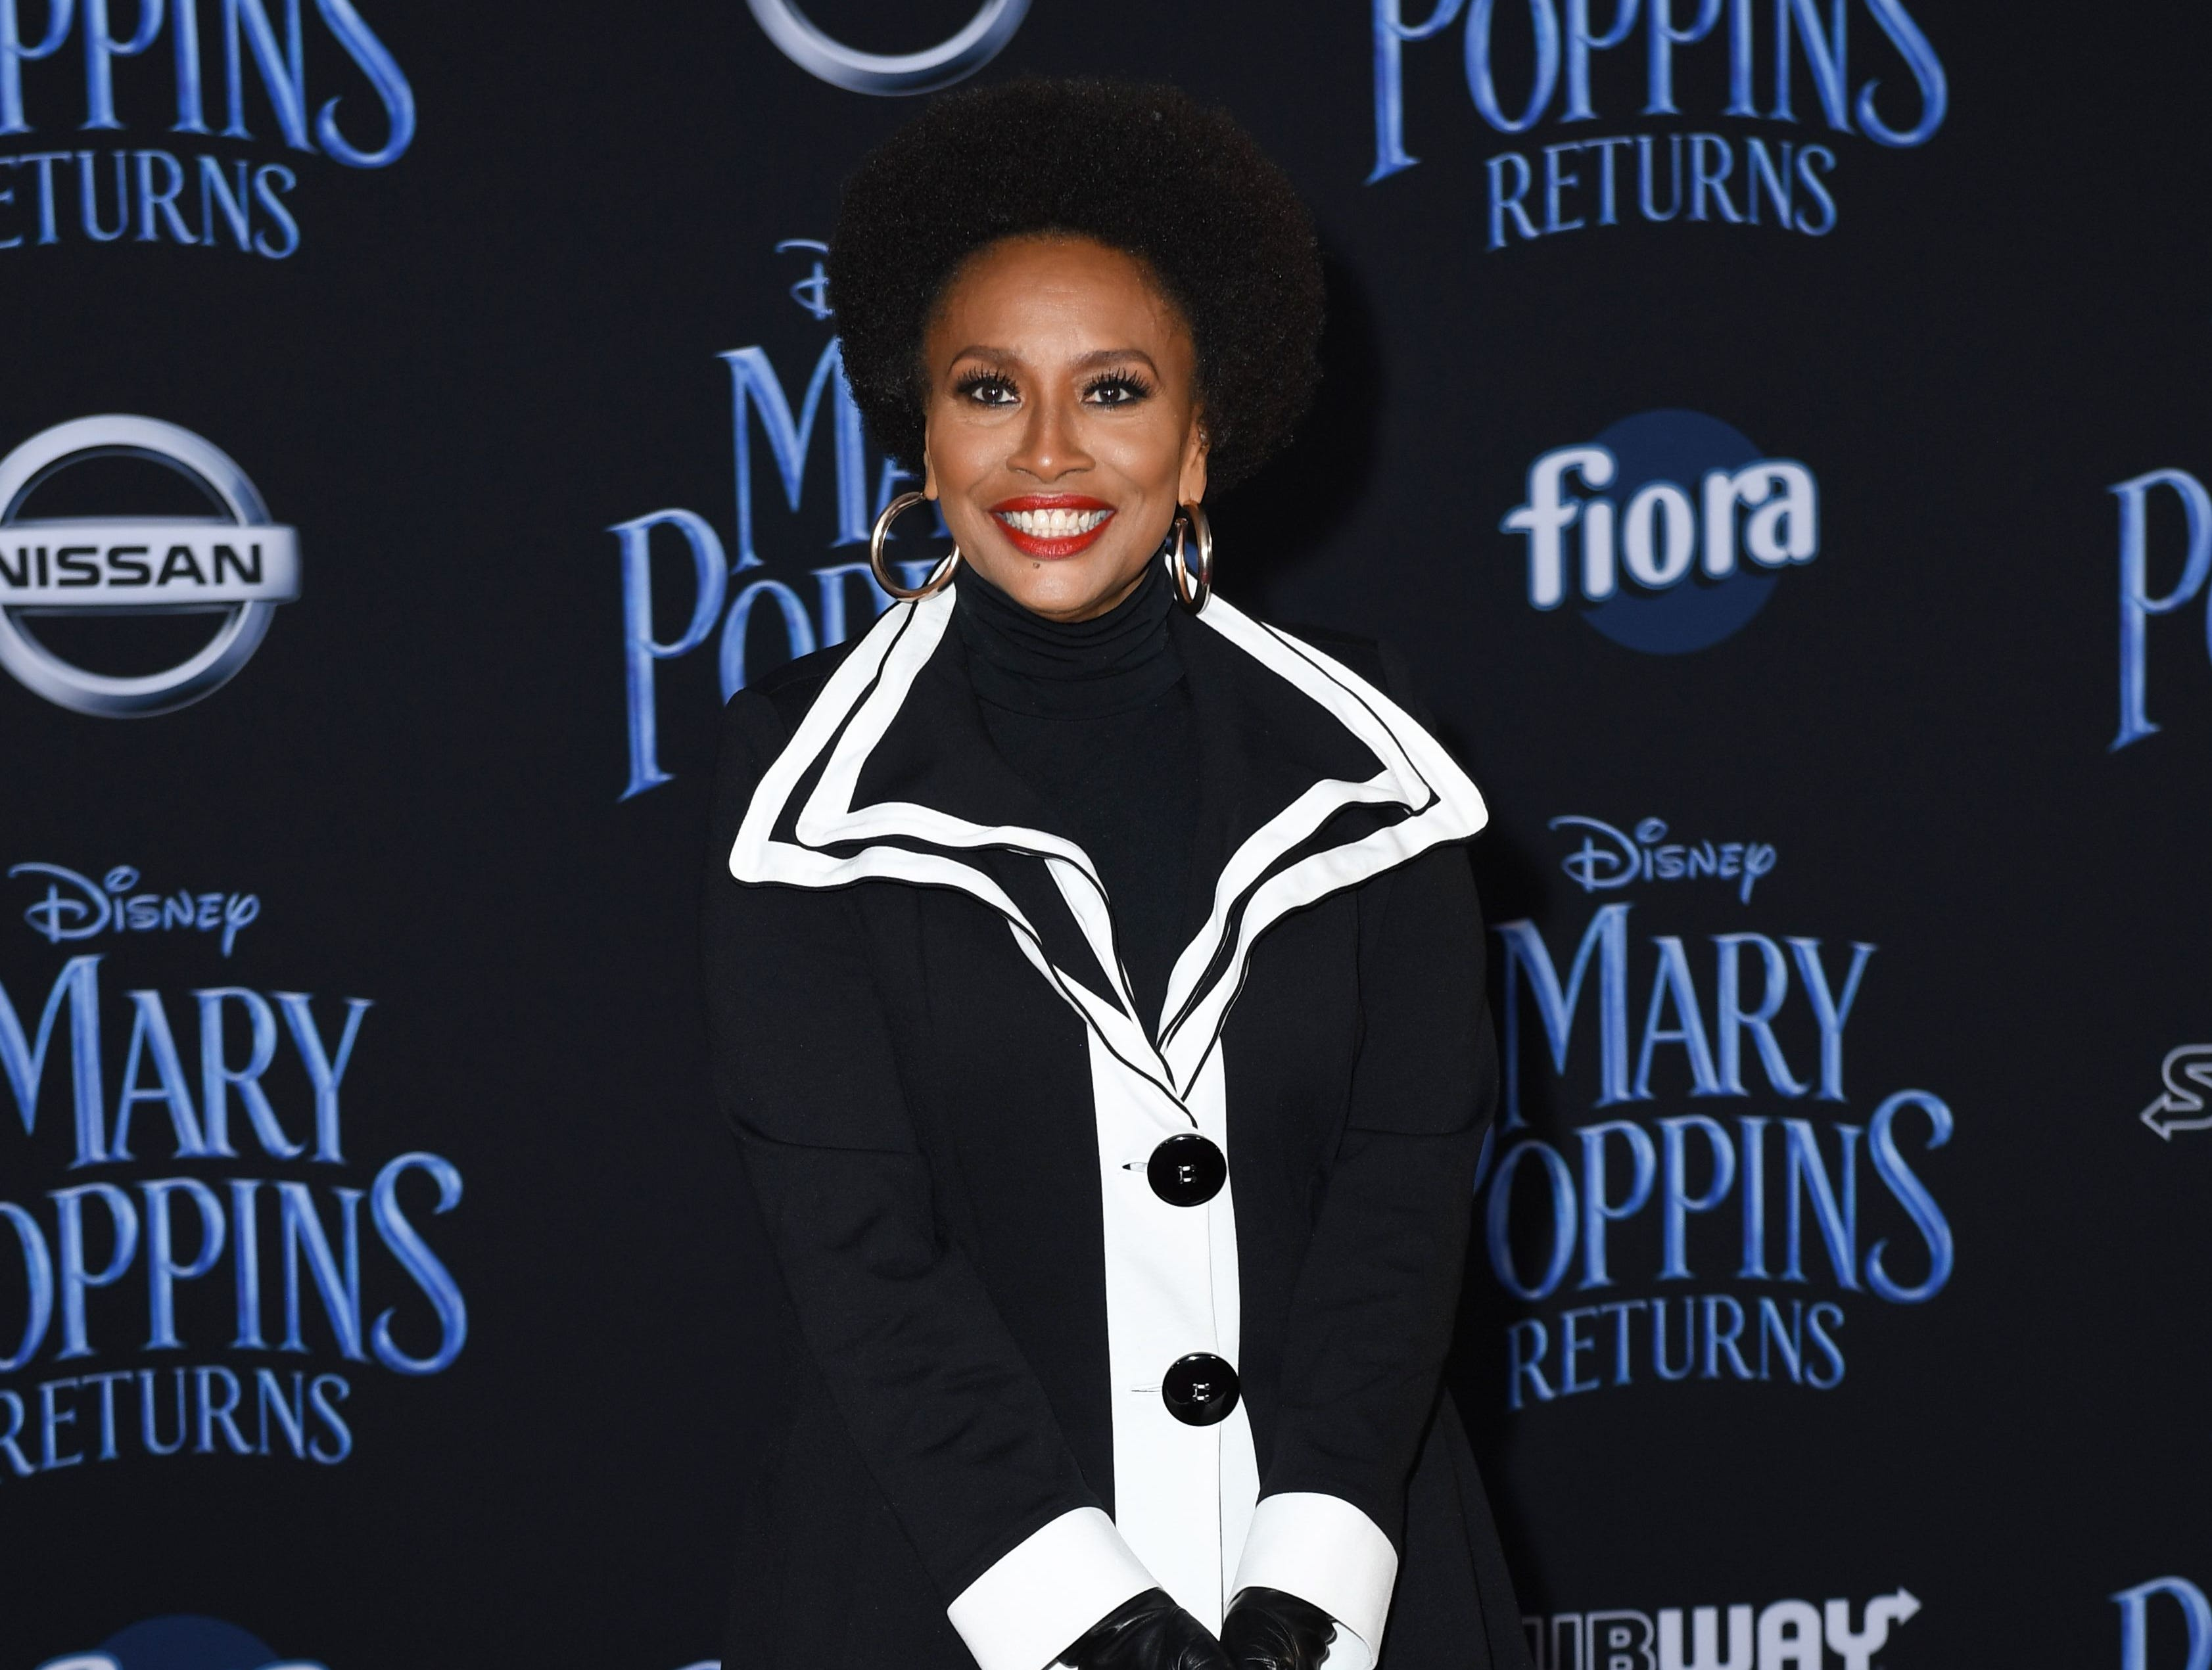 """US actress Jennifer Lewis arrives for the world premiere of Disney's """"Mary Poppins Returns"""" at the Dolby theatre in Hollywood on November 29, 2018. (Photo by VALERIE MACON / AFP)VALERIE MACON/AFP/Getty Images ORG XMIT: 'Mary Pop ORIG FILE ID: AFP_1B80TE"""